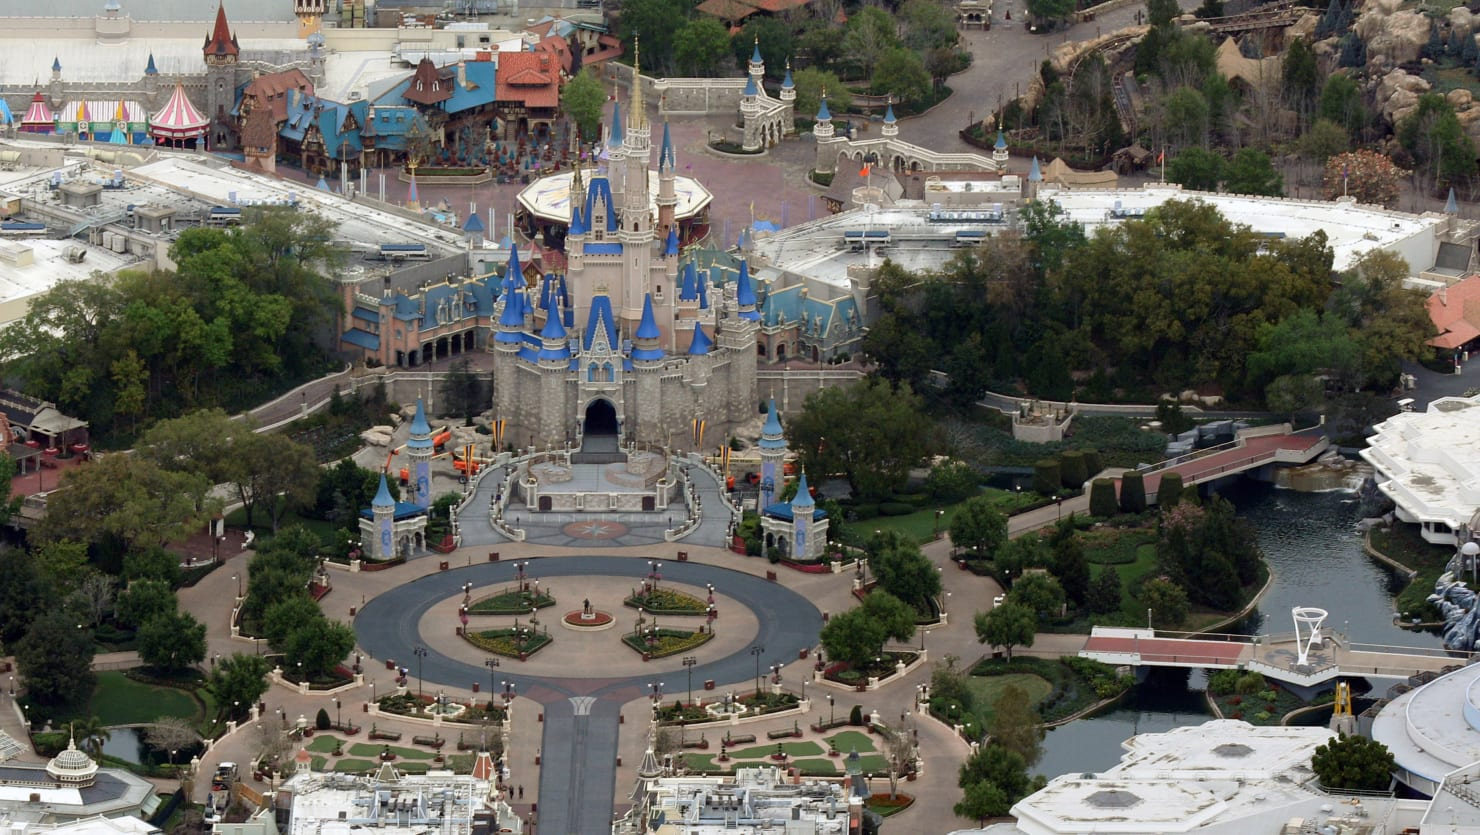 Disney World Re-Opens with Short Lines and Scared Staff, as Florida COVID-19 Cases Spike